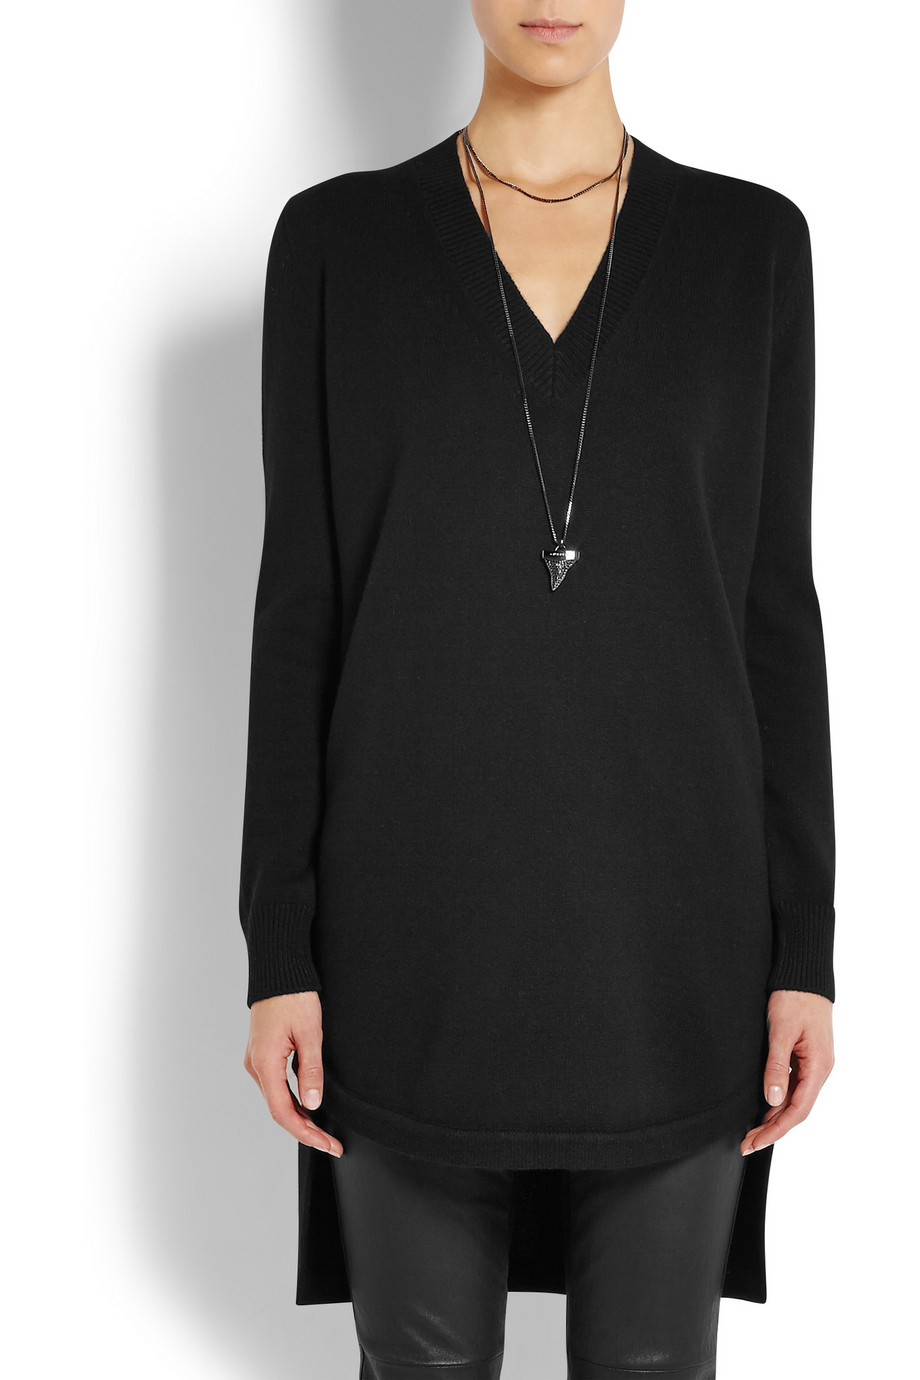 givenchy sweater in black cashmere with neoprene detail lyst. Black Bedroom Furniture Sets. Home Design Ideas